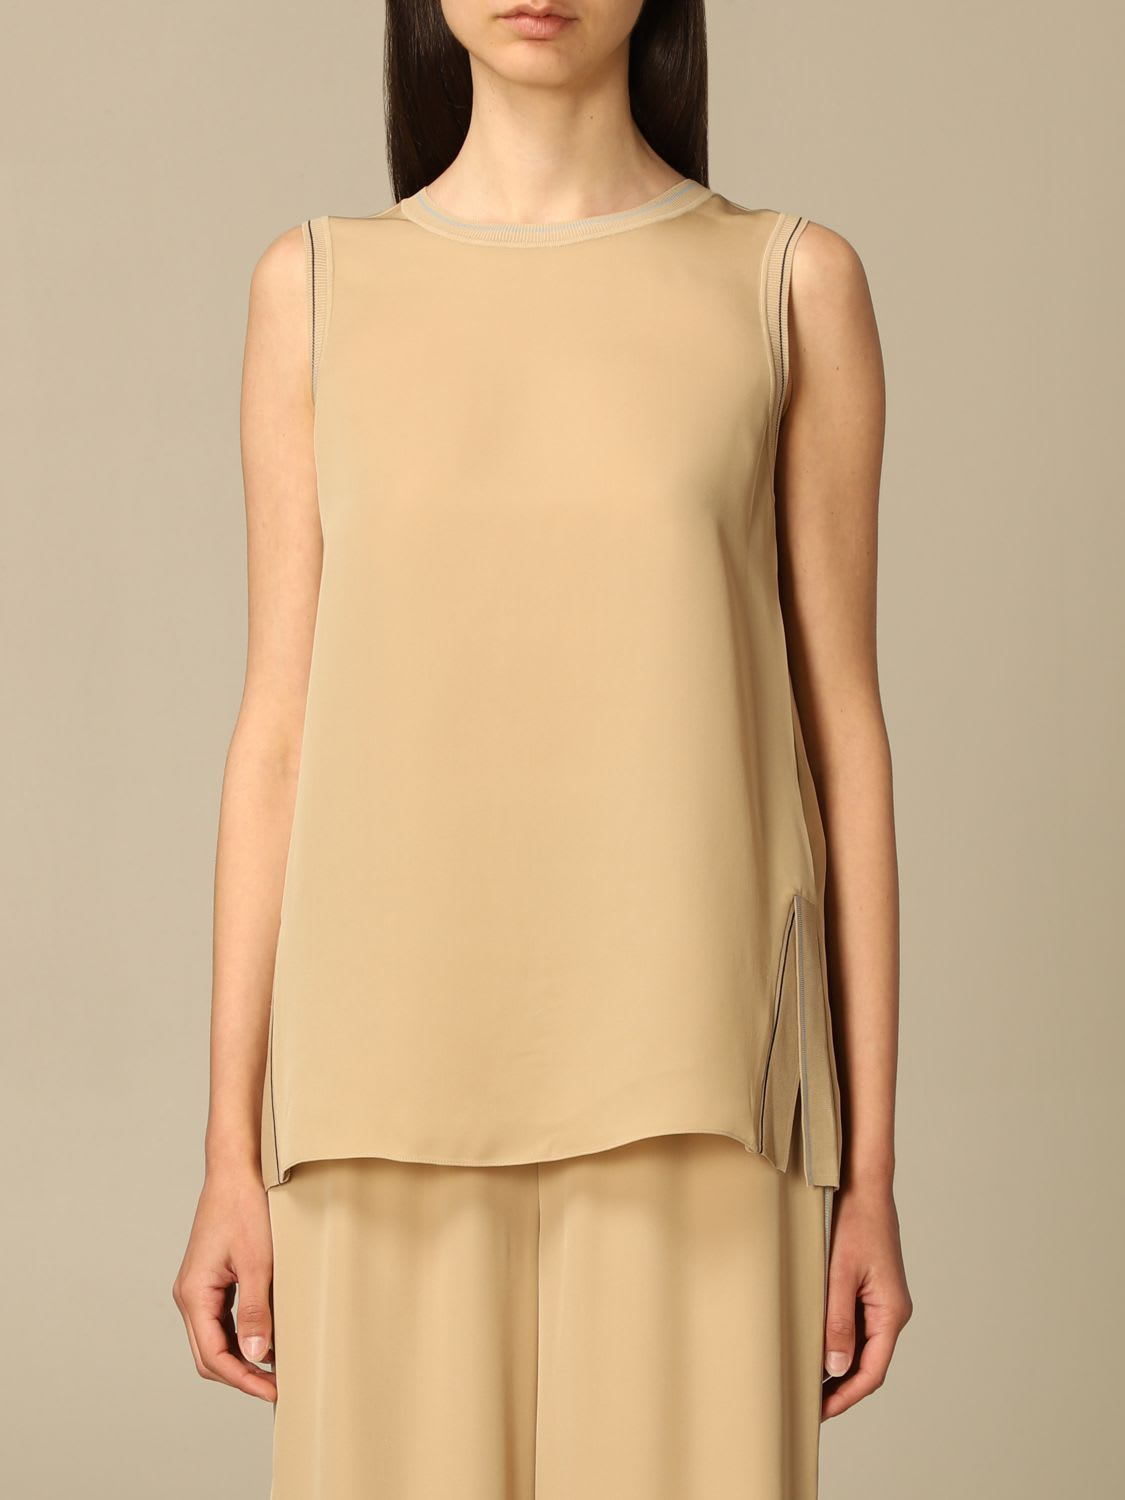 Theory Top Top Women Theory